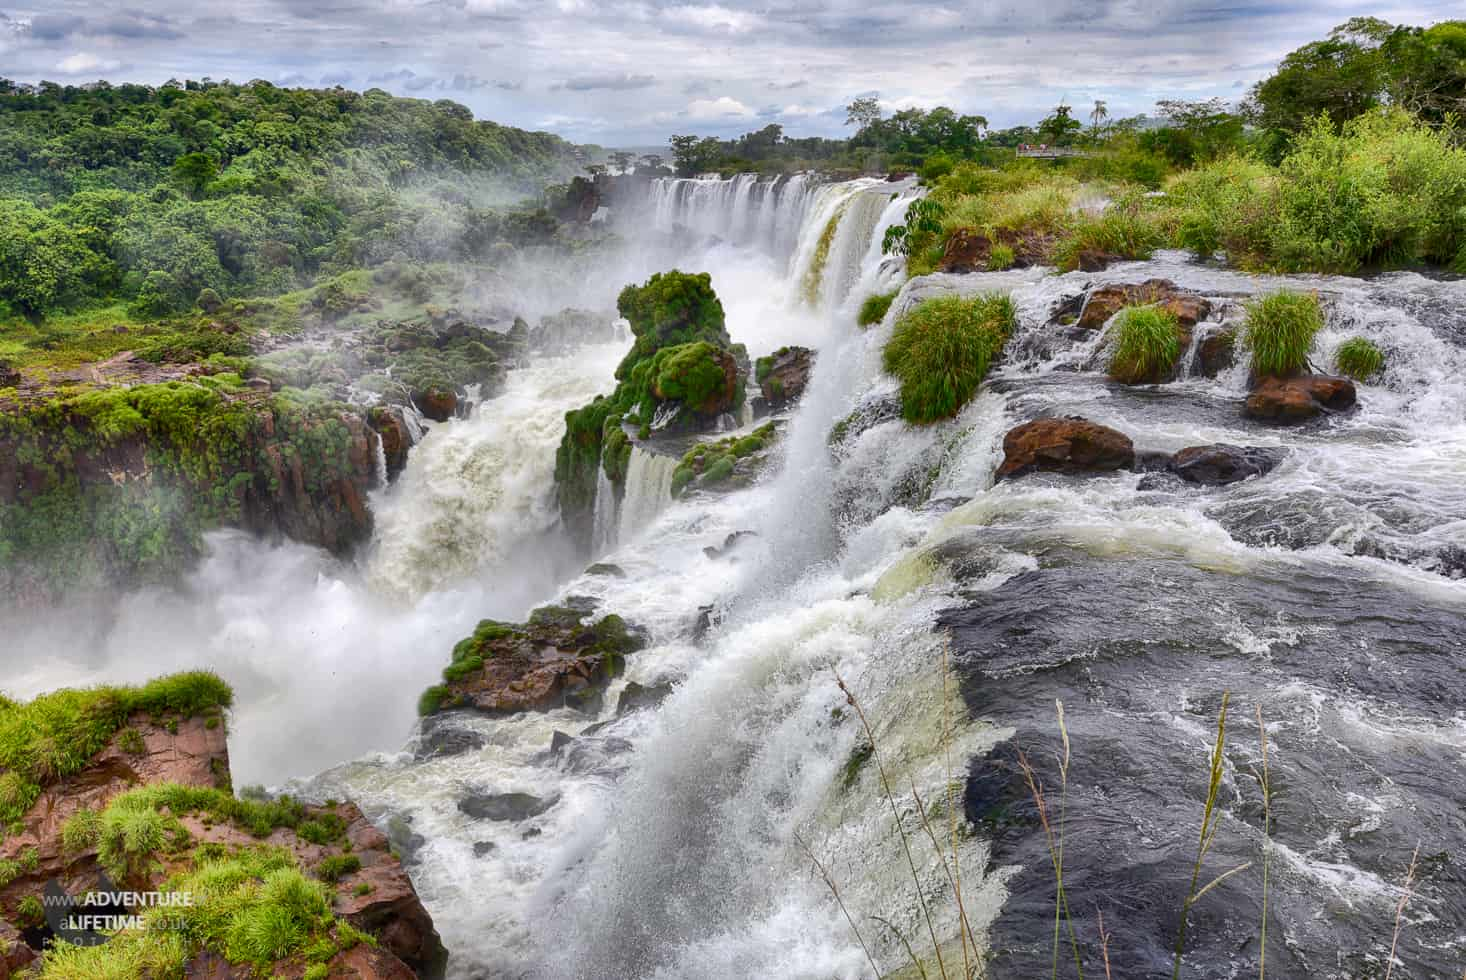 HDR of an esspecially violent section of Iguazu Falls